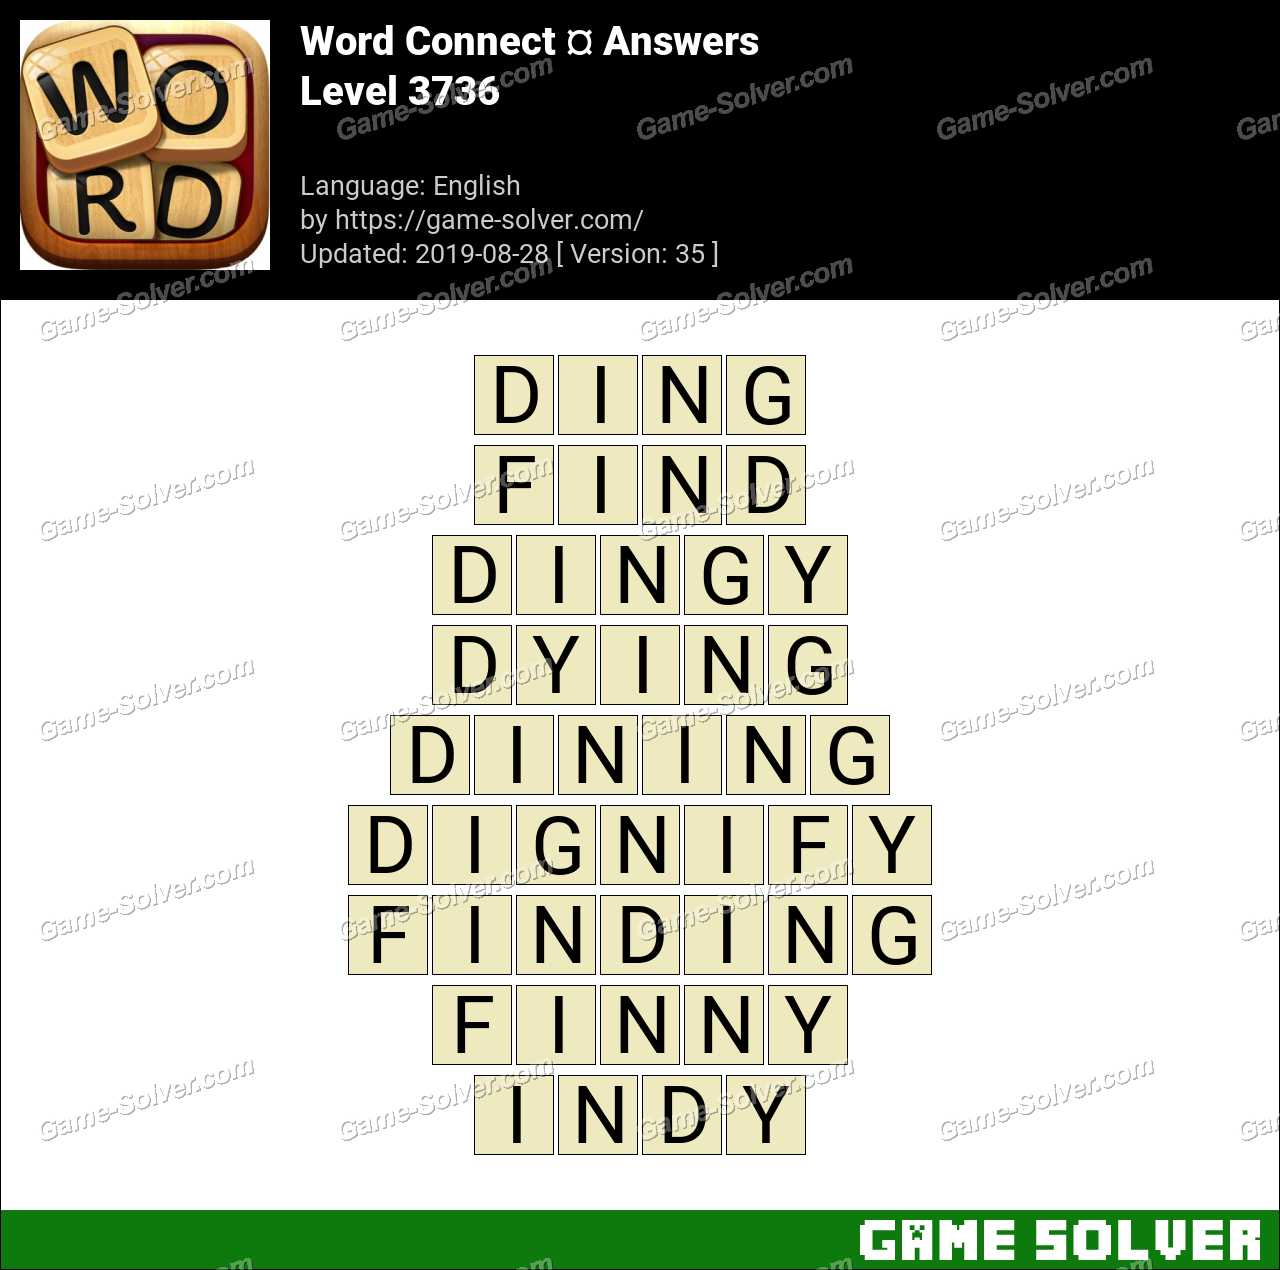 Word Connect Level 3736 Answers